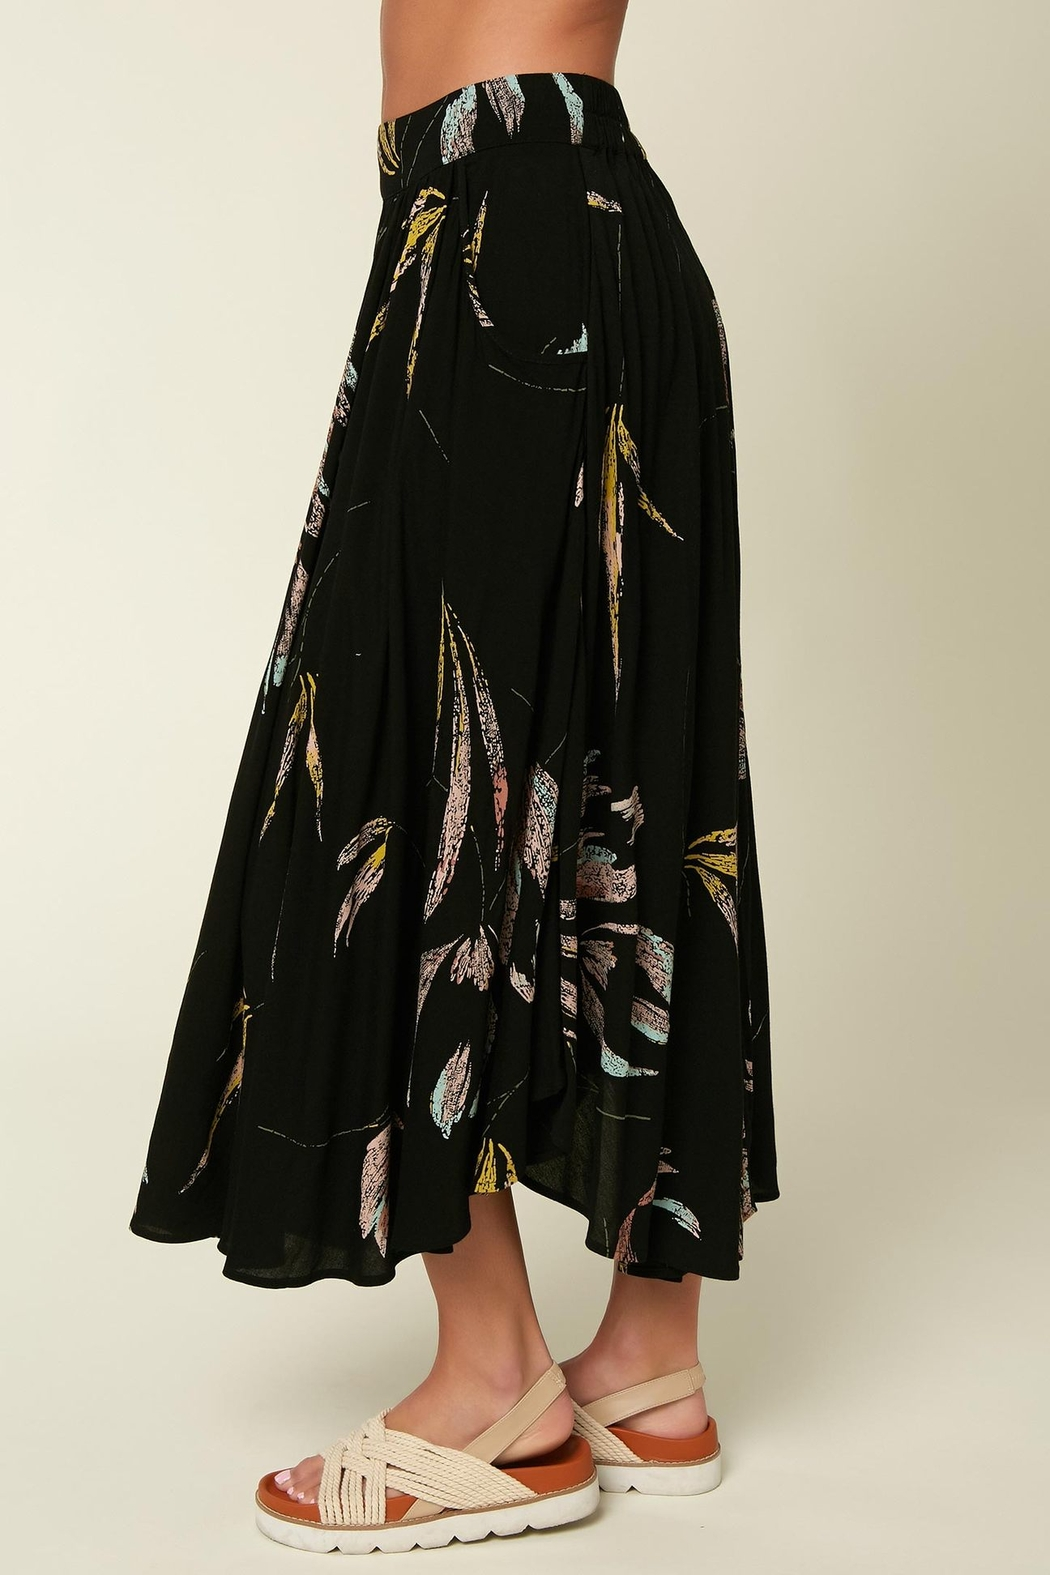 O'Neill Merin Floral Skirt - Side Cropped Image